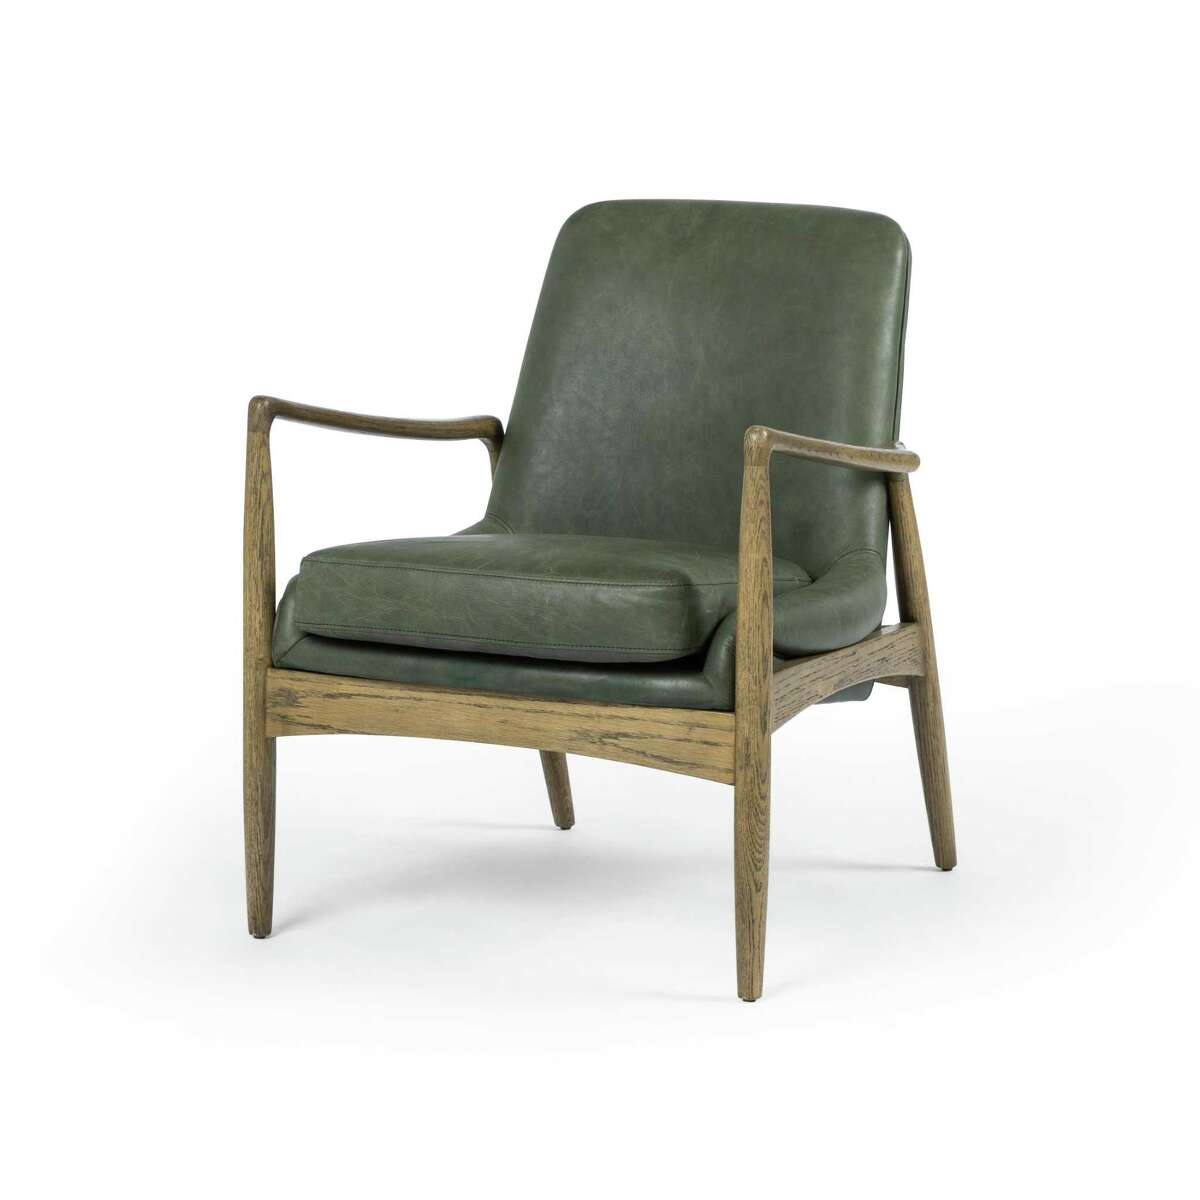 Four Hands' Braden chair is upholstered in muted green leather. It was part of new collections shown at the Fall 2019 High Point Market.